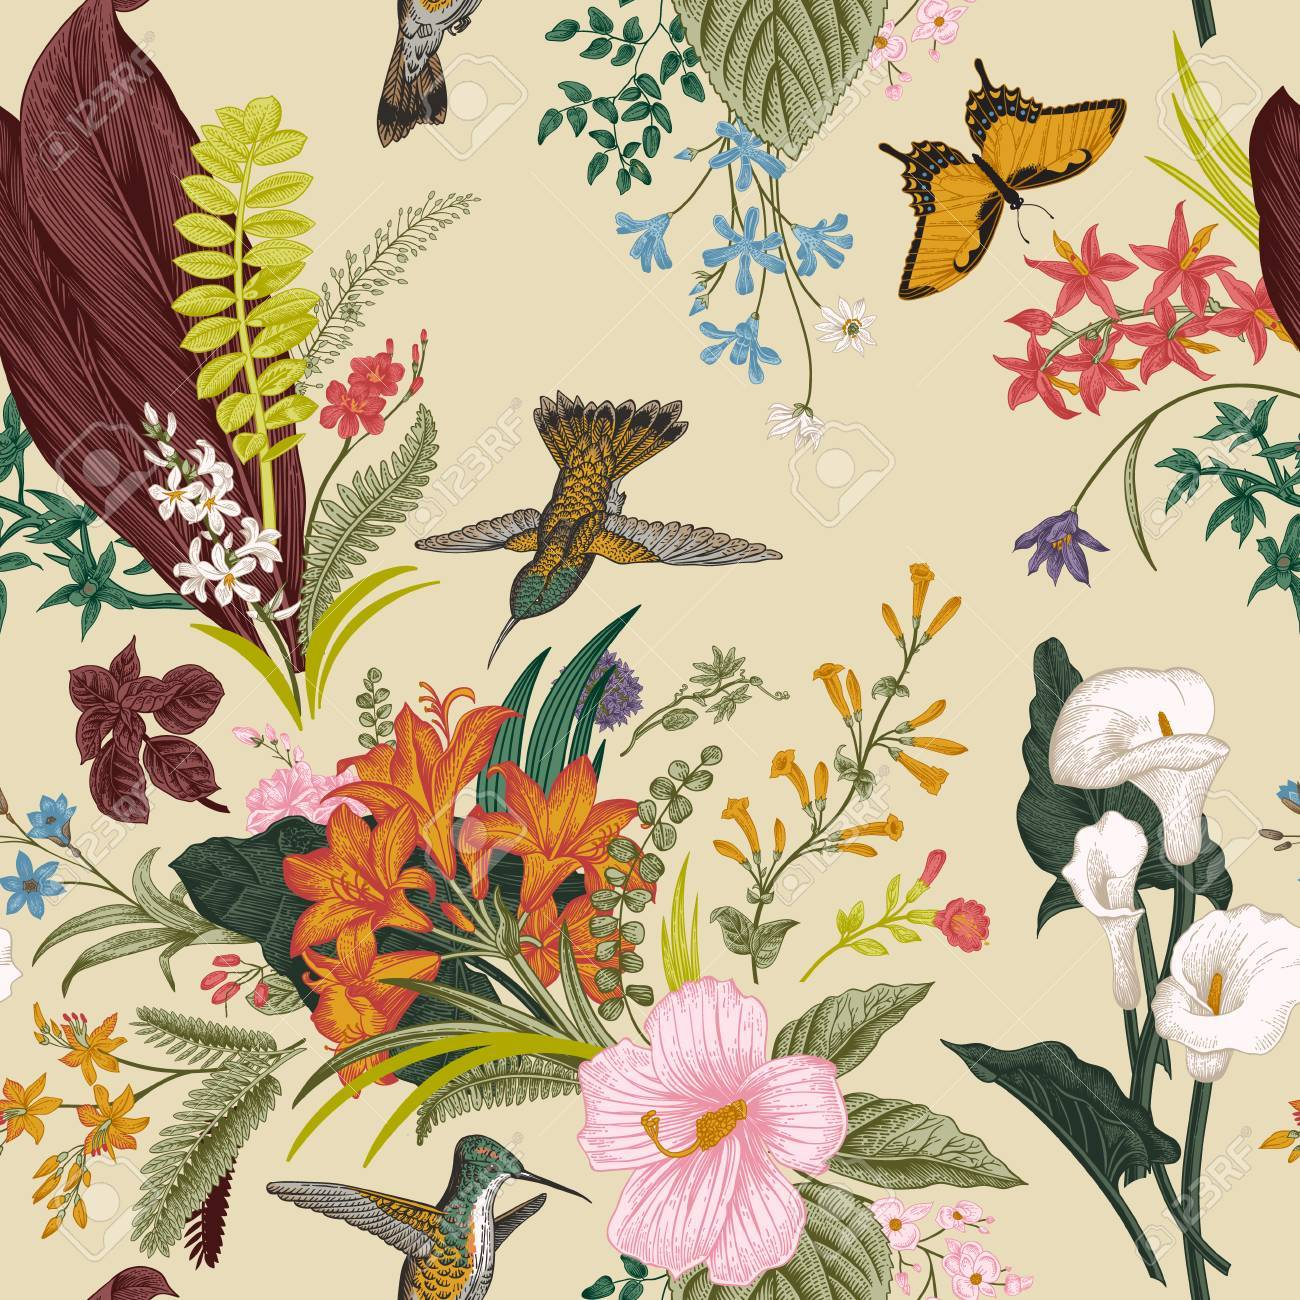 Vector seamless vintage floral pattern. Exotic flowers and birds. Botanical classic illustration. Colorful - 64657530